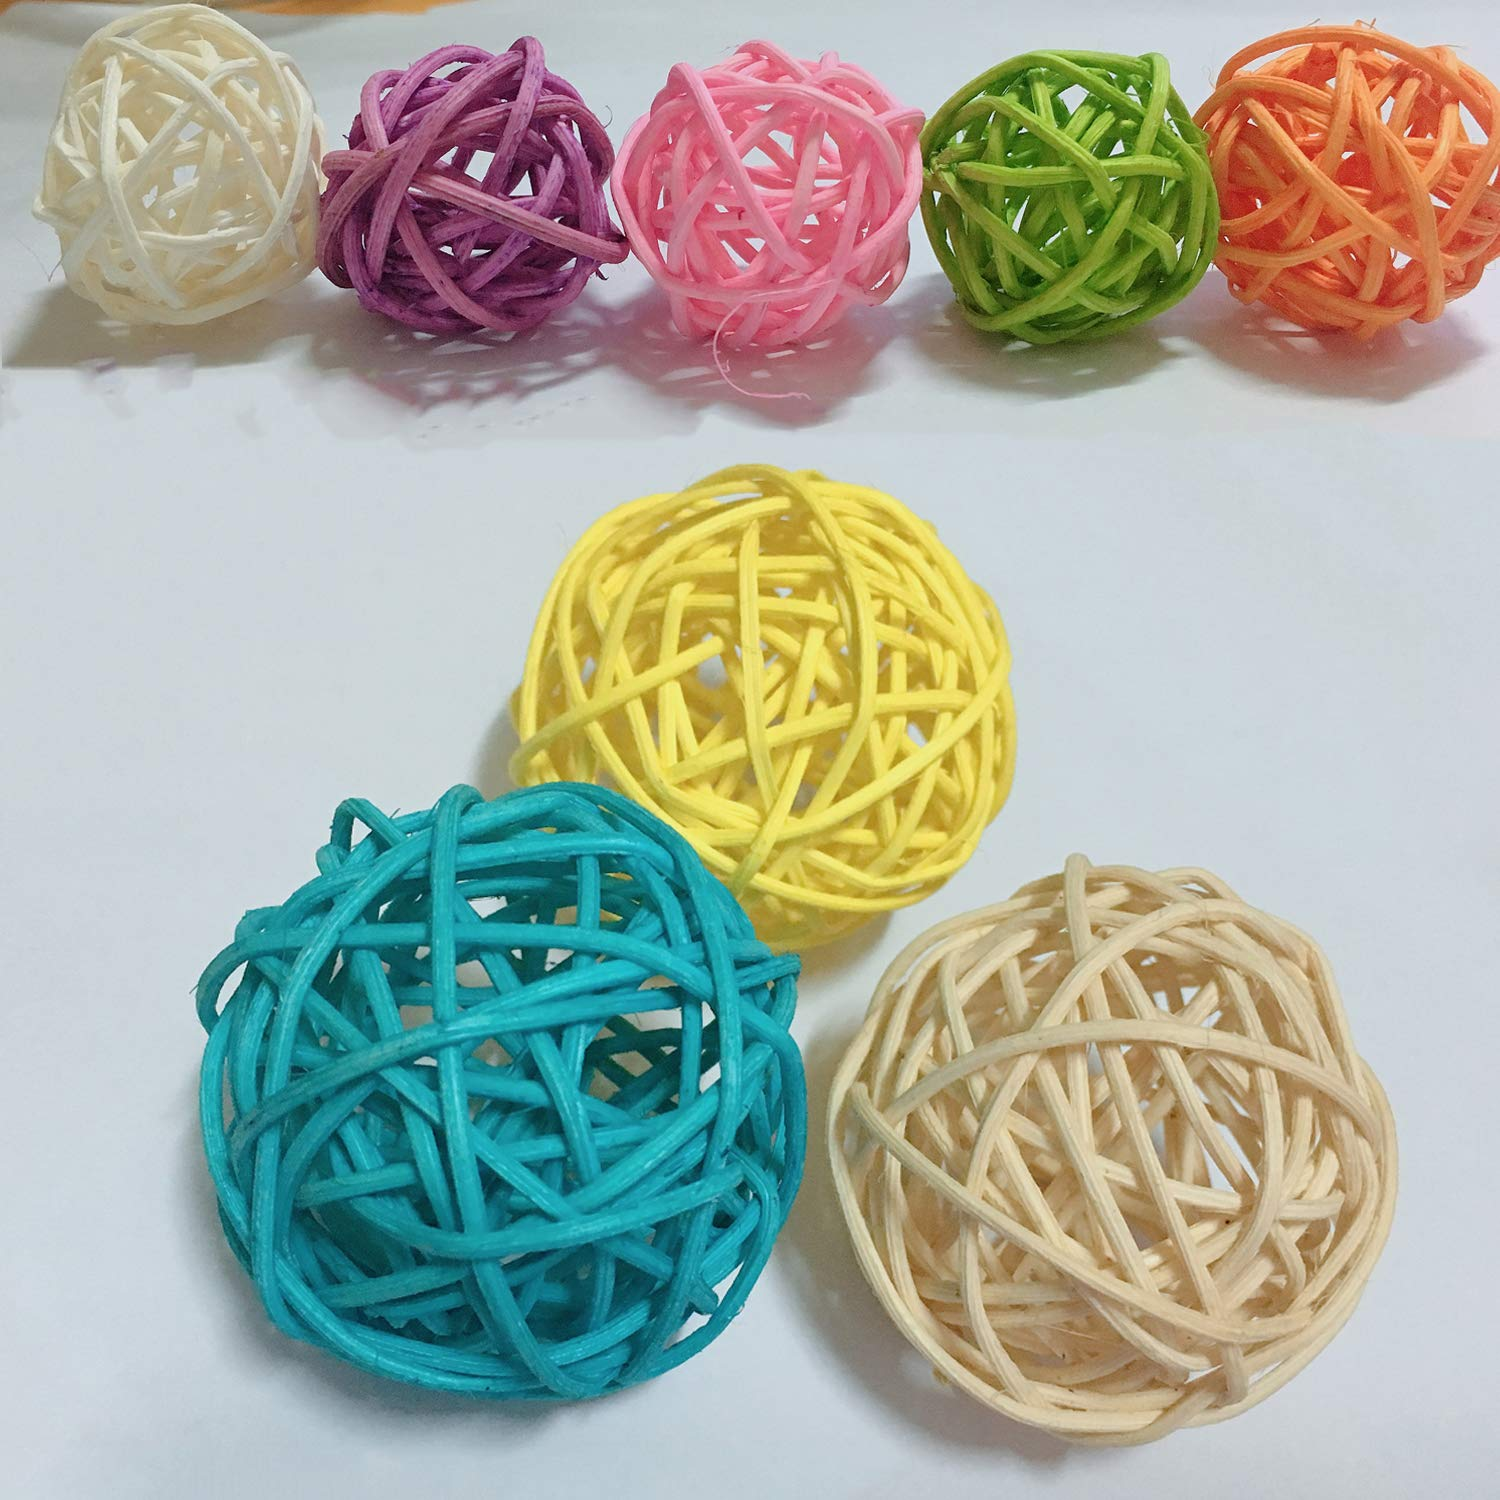 3cm 24pcs Y-luck Wicker Rattan Balls,Decorative Orbs Natural Rattan Balls Vase Fillers for Craft Project Wedding Table Decoration Themed Party,Aromatherapy Accessories,Christmas Tree Decoration